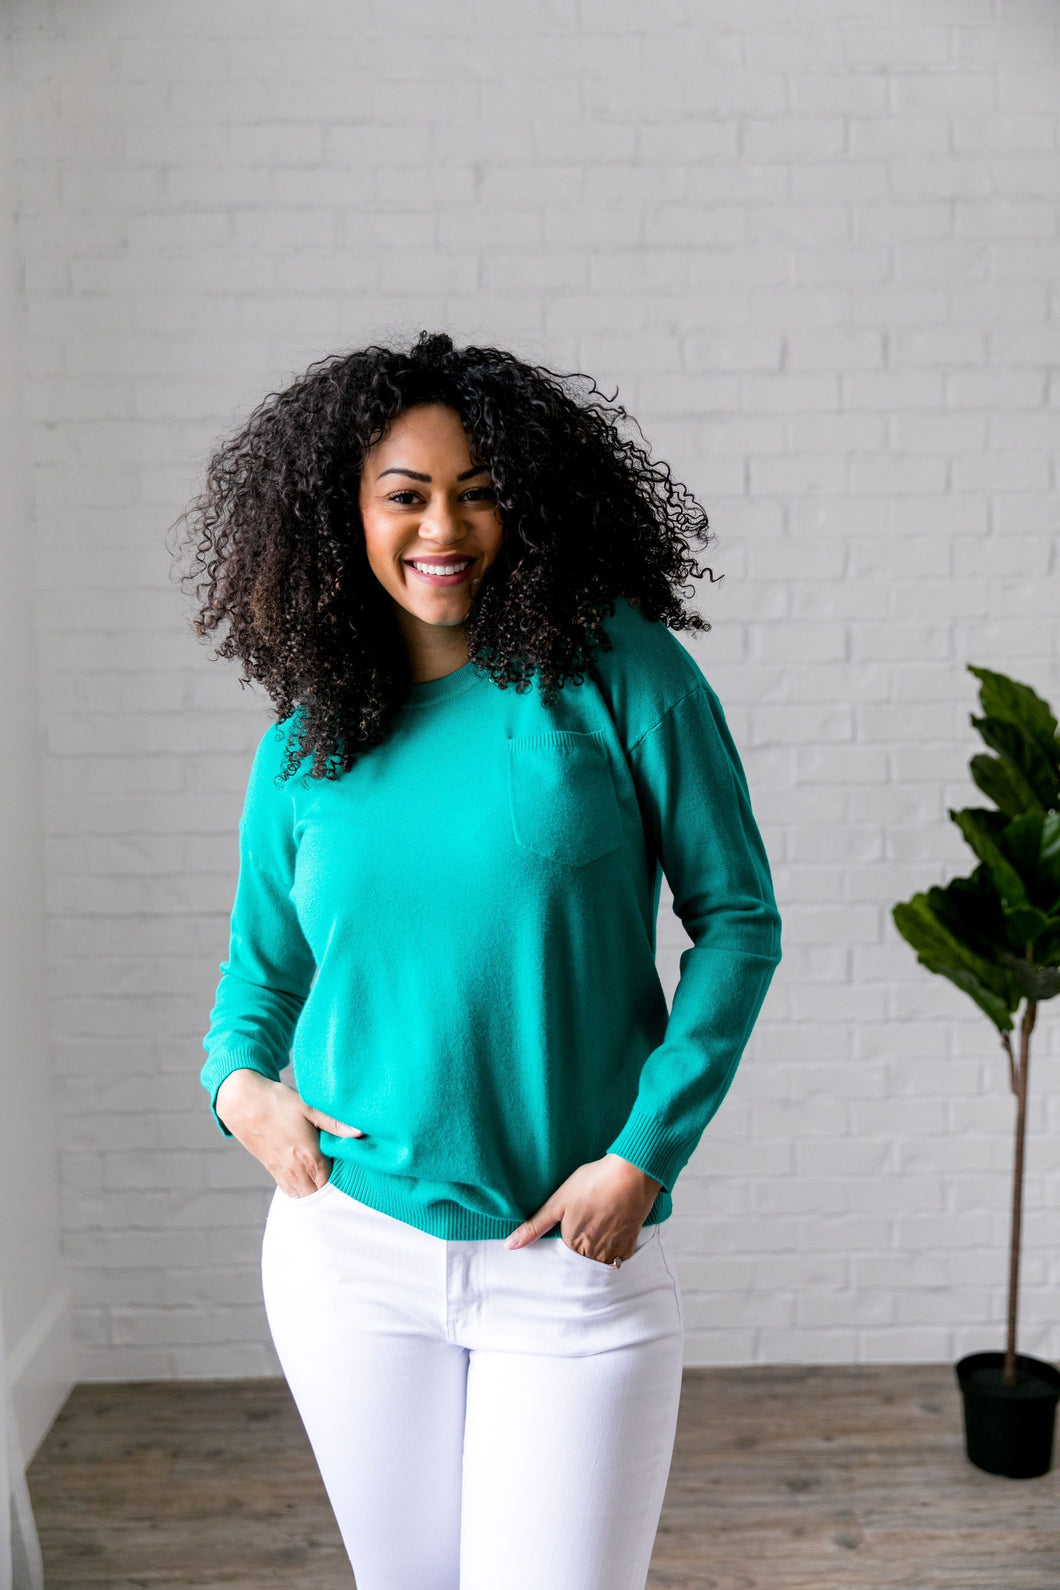 Top 'O The Mornin' Sweater In Emerald - ALL SALES FINAL